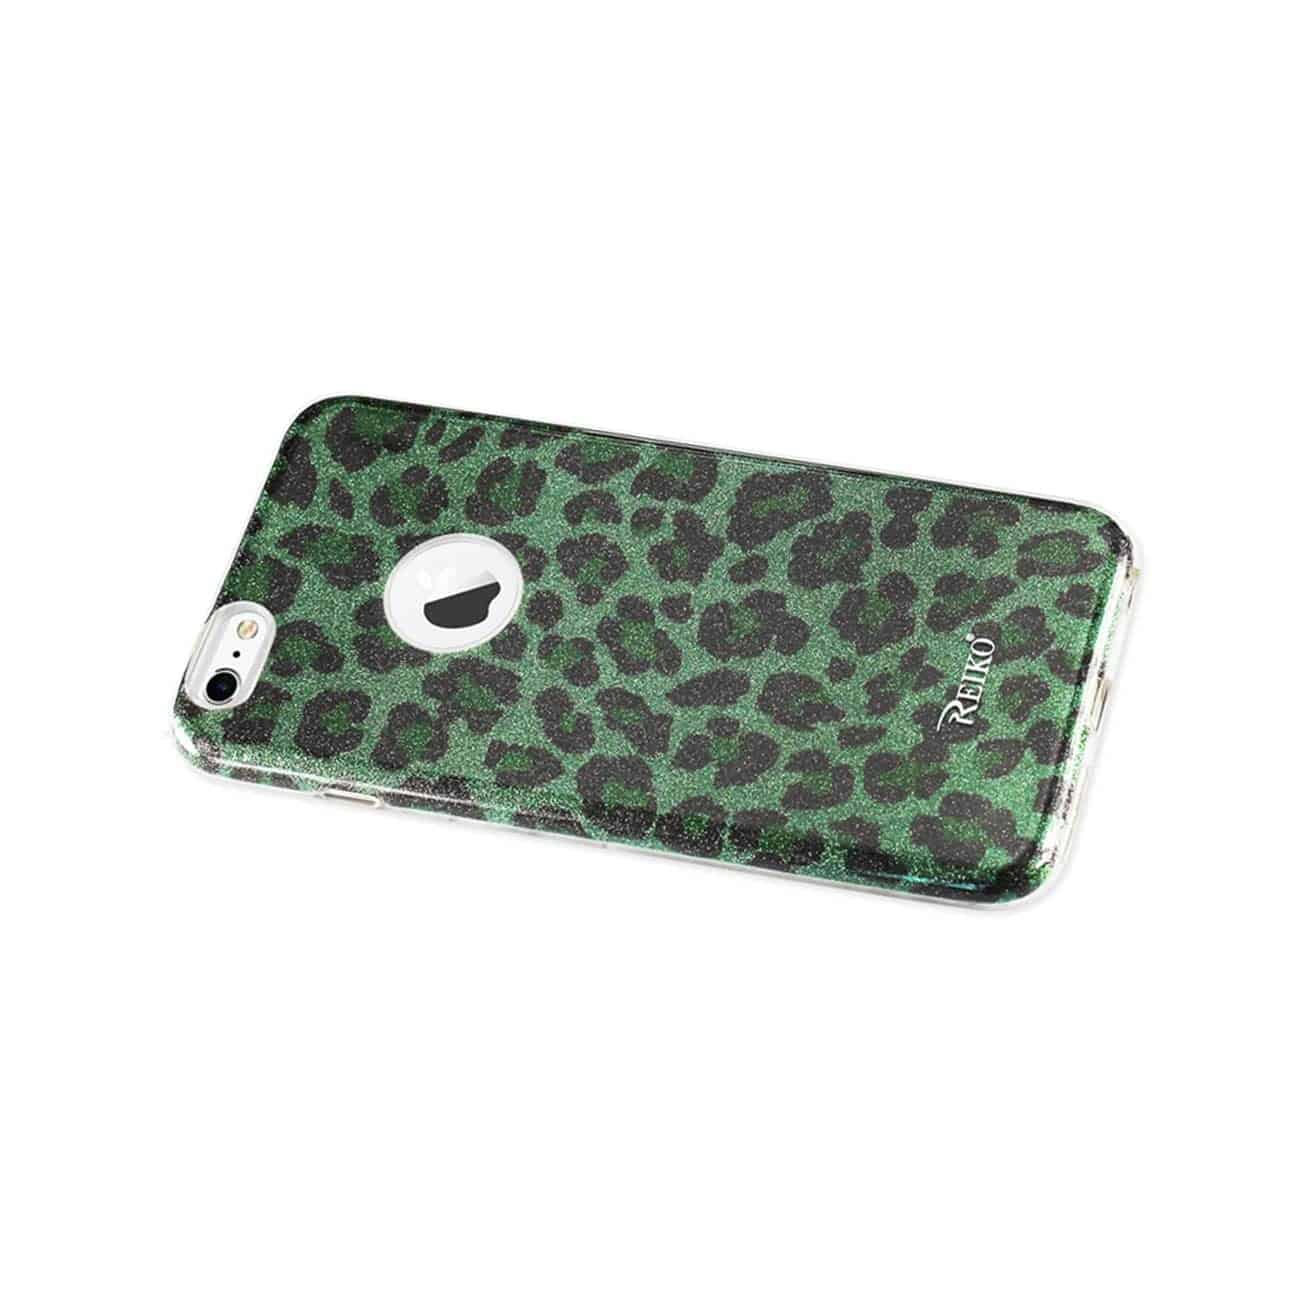 IPHONE 6 PLUS/ 6S PLUS SHINE GLITTER SHIMMER HYBRID CASE IN LEOPARD GREEN